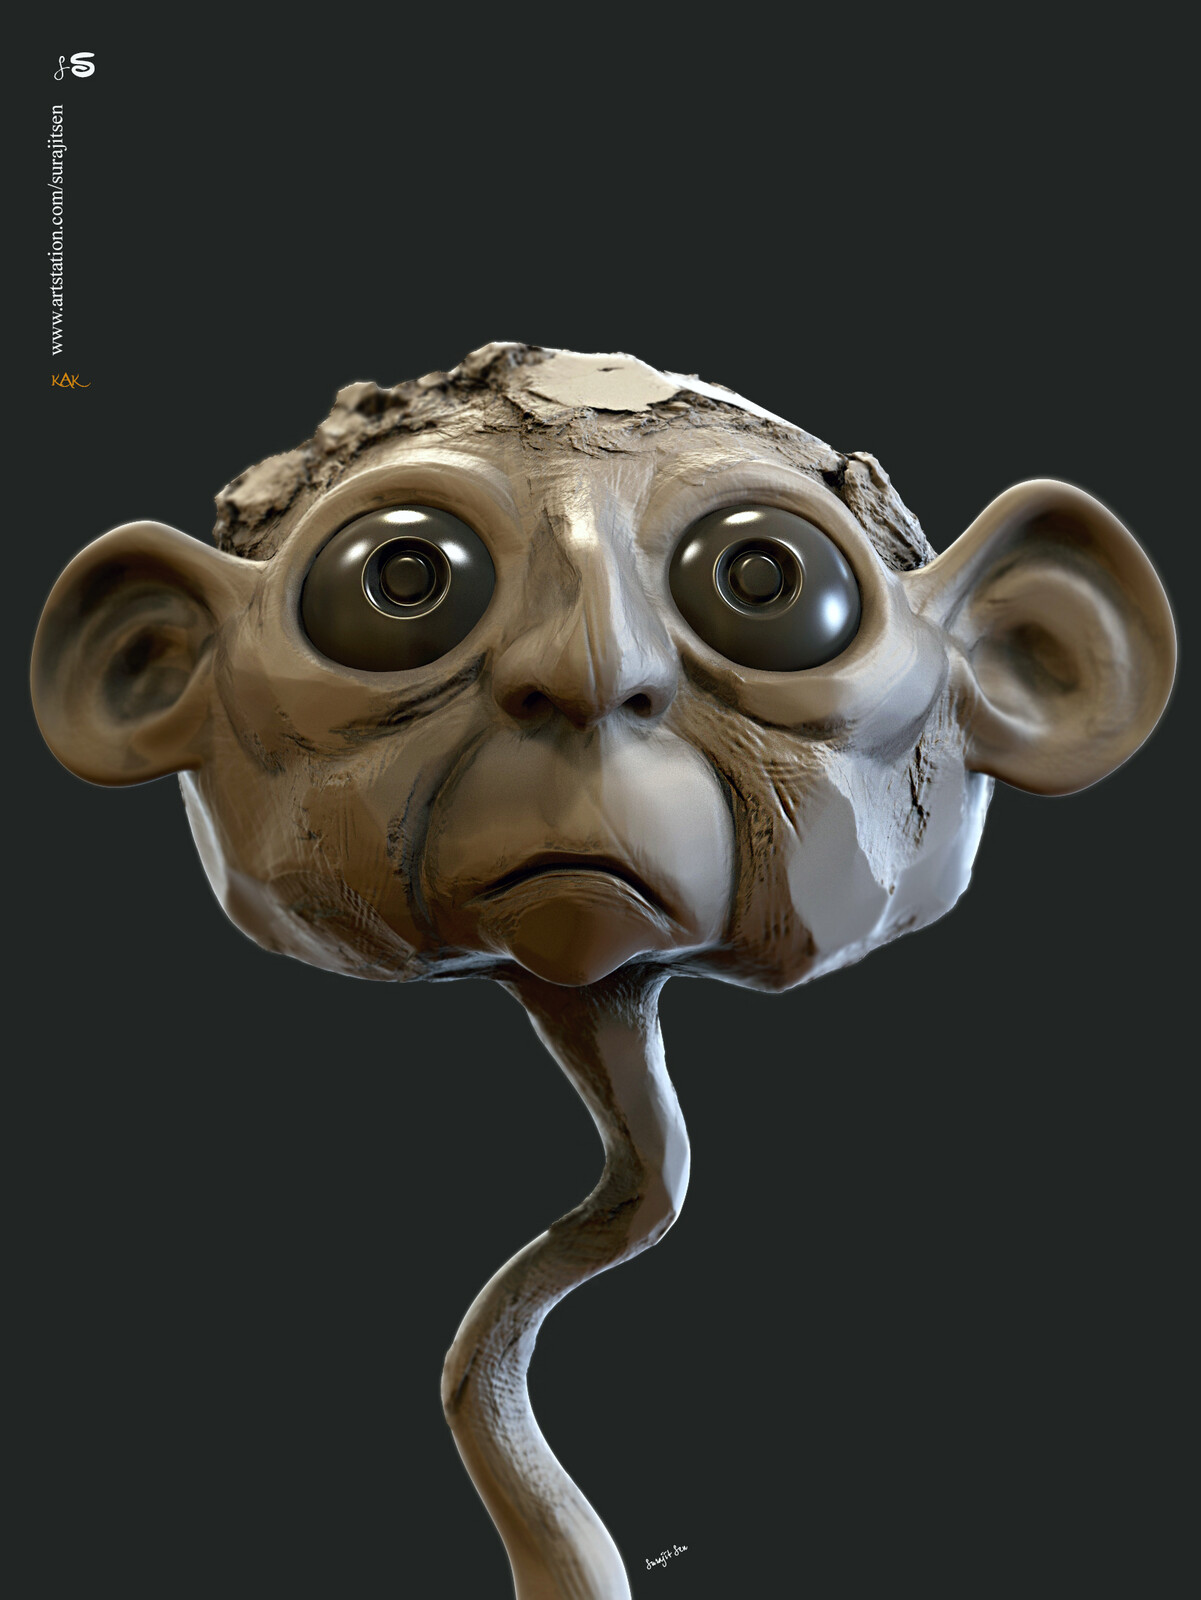 #doodle...in my free time. Kak...Digital Sculpture. Just played with brushes! Concept from my rough sketch book.